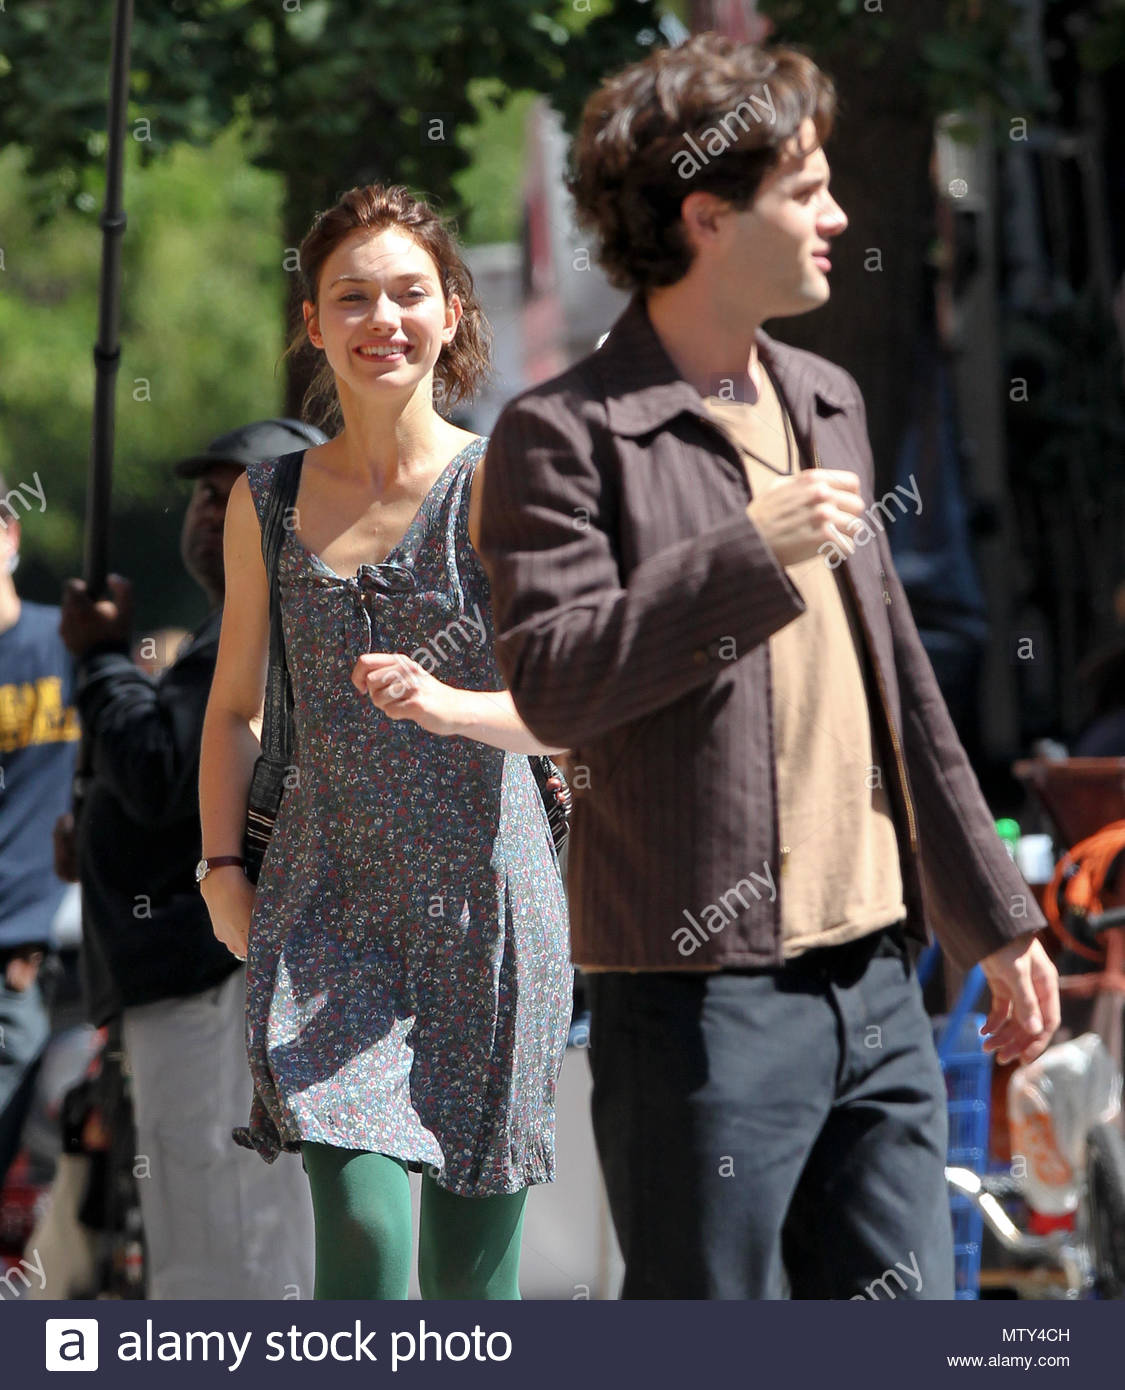 Imogen poots and penn badgley british actress imogen poots and penn imogen poots and penn badgley british actress imogen poots and penn badgley seen filming a movie greetings from tim buckley in new york city usa m4hsunfo